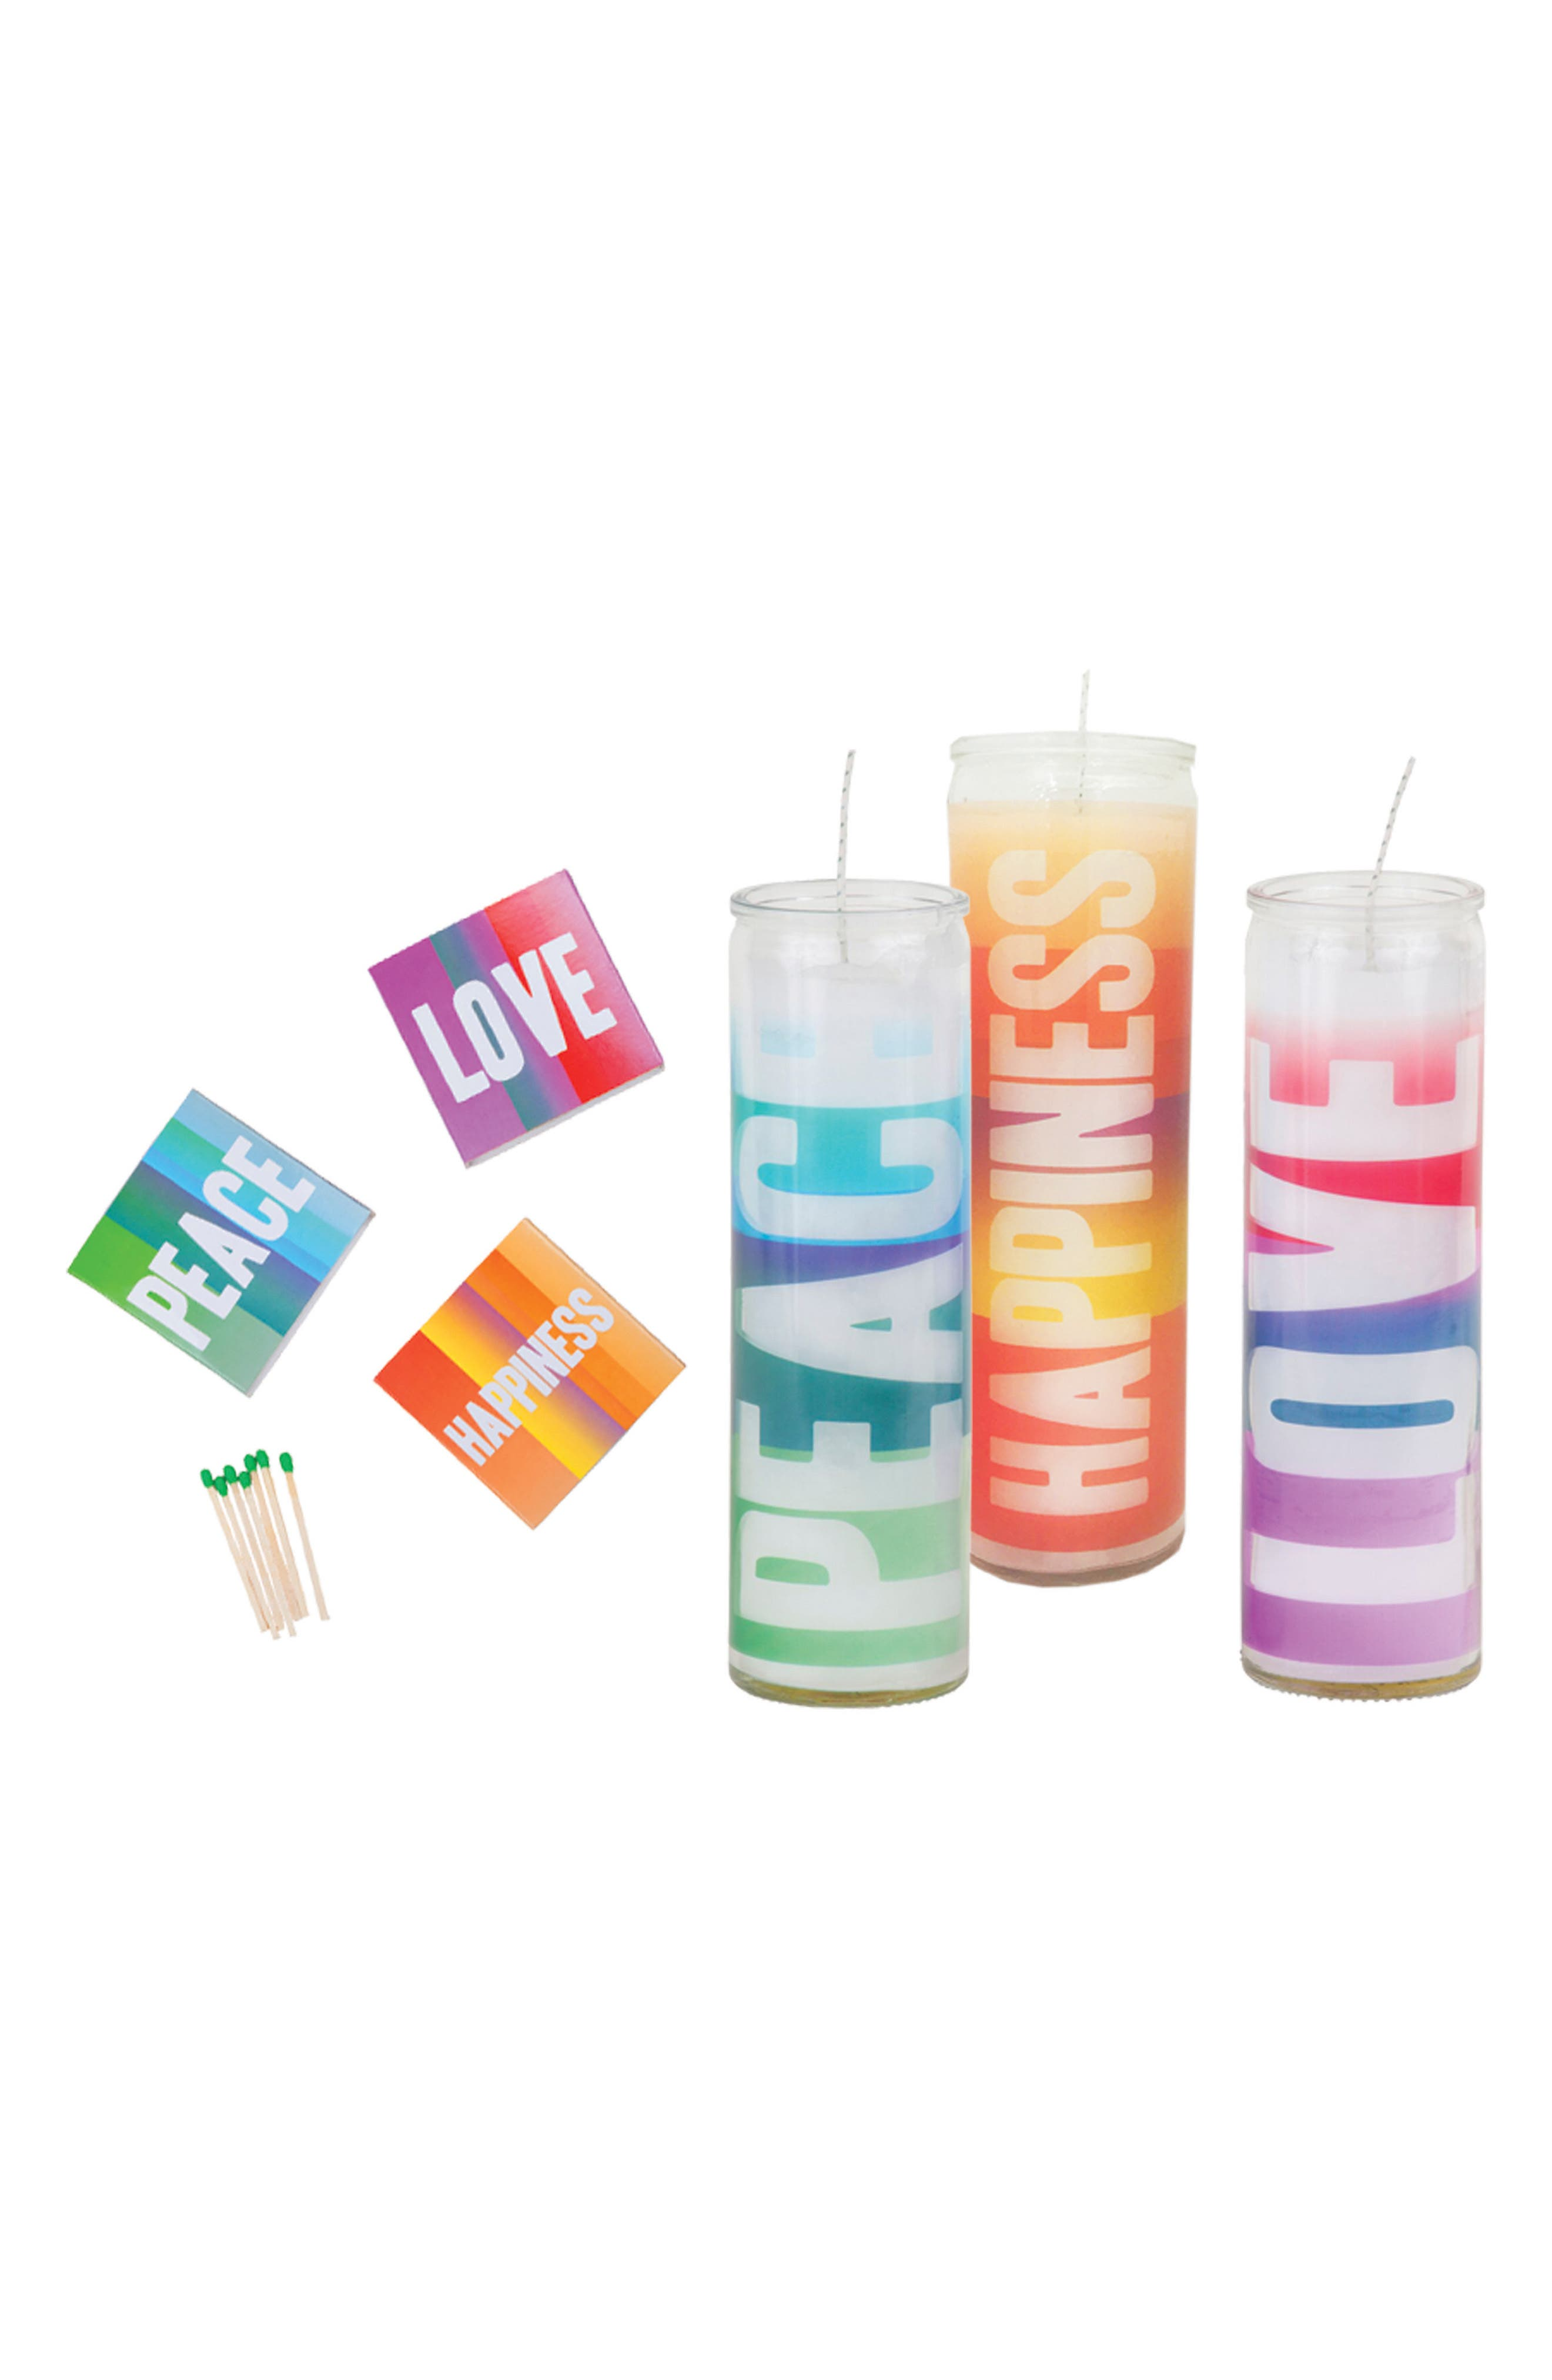 6-Piece Candle Gift Set,                         Main,                         color, 800